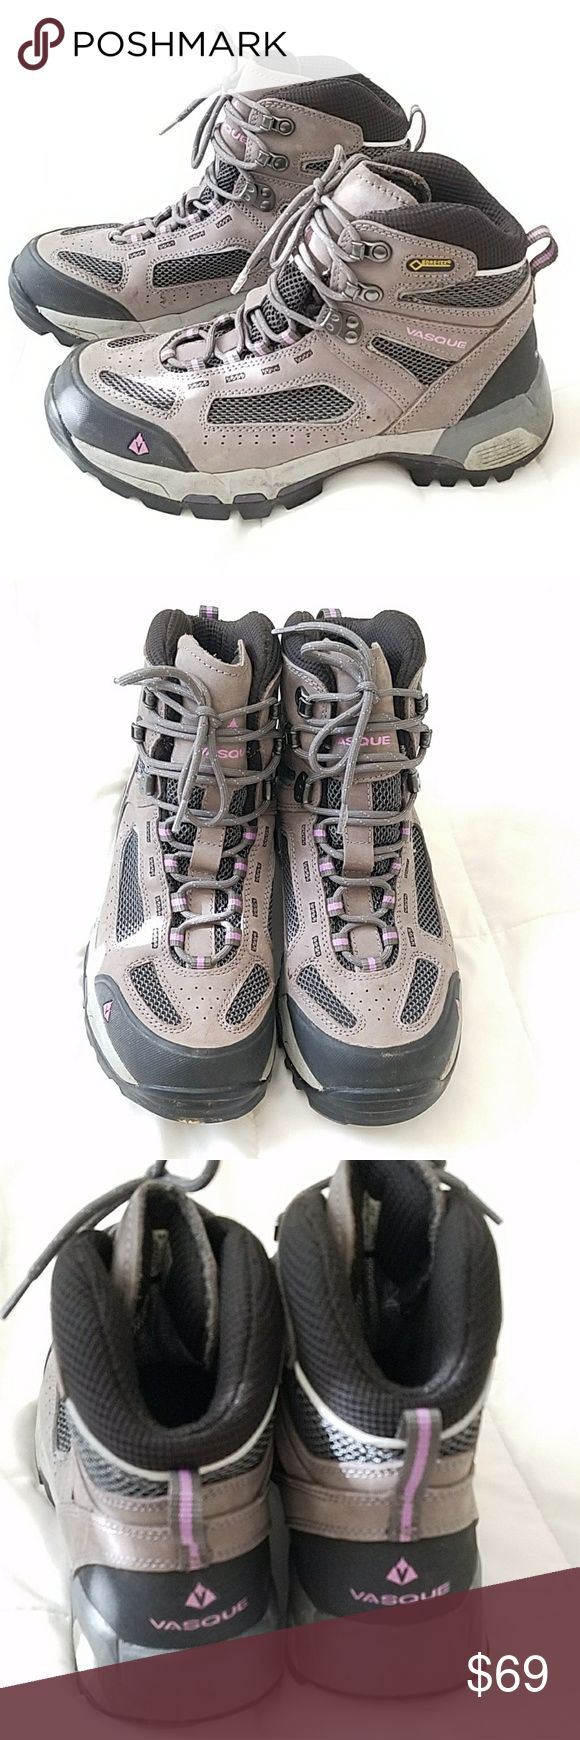 Vasque Hiking Boots Gore Tex Amazing womens Vasque Hiking Boots. Gore Tex, purple and grey color. Lightly worn a few time outdoors. Some scuffing around the edges, a little dirt on the bottom but super clean inside, no smells. Vasque Shoes Winter & Rain Boots